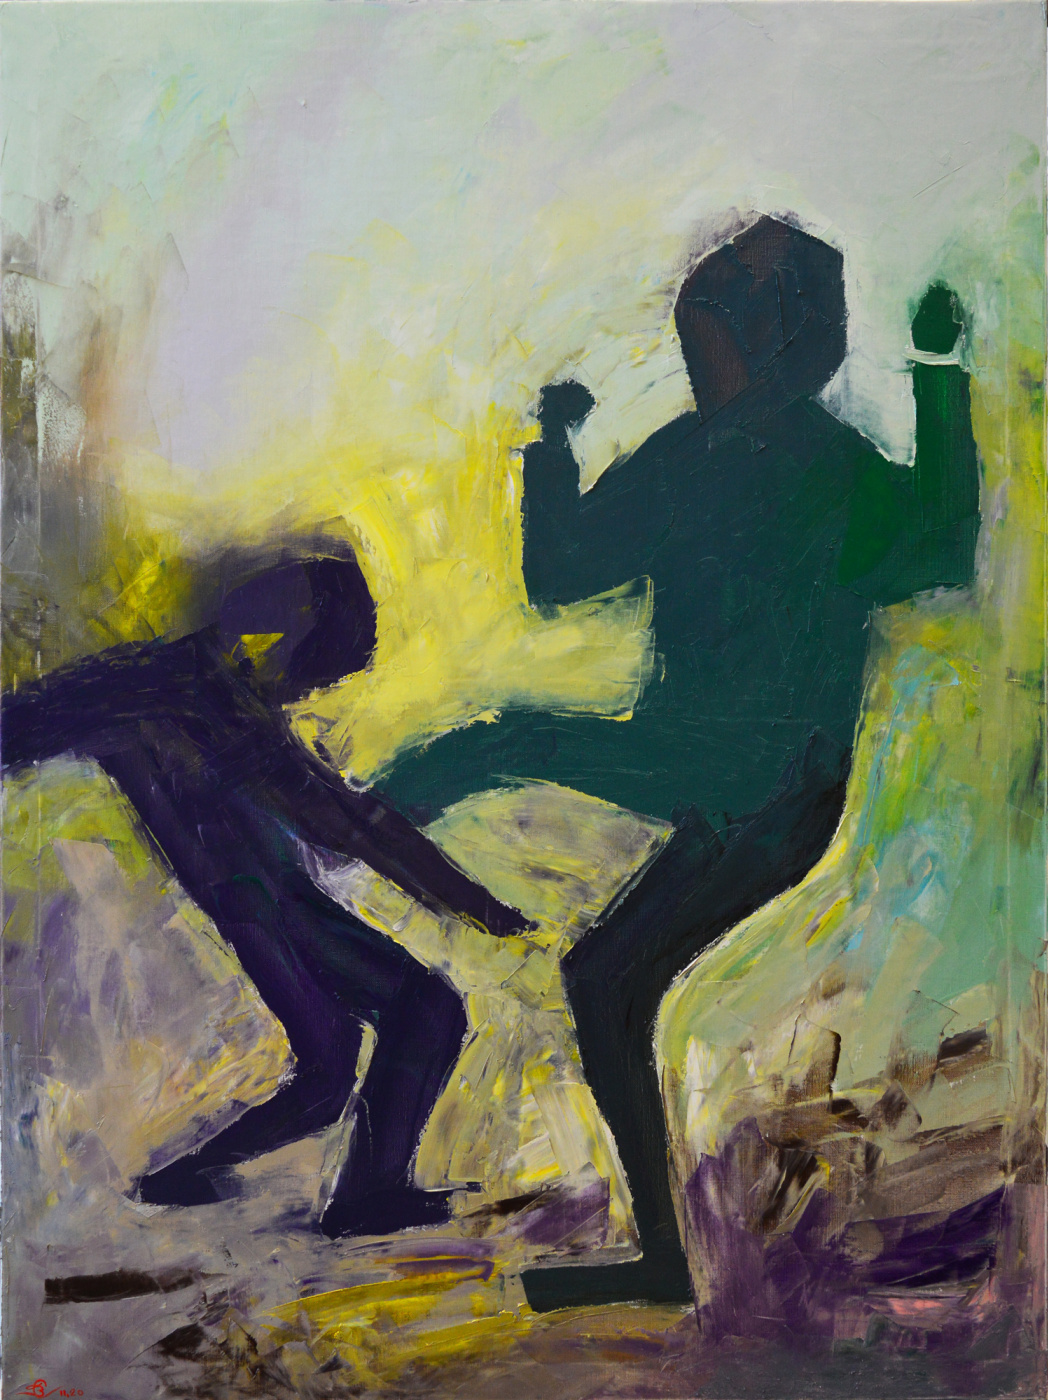 Vadim Anatolyevich Stolyarov. A fight with a shadow